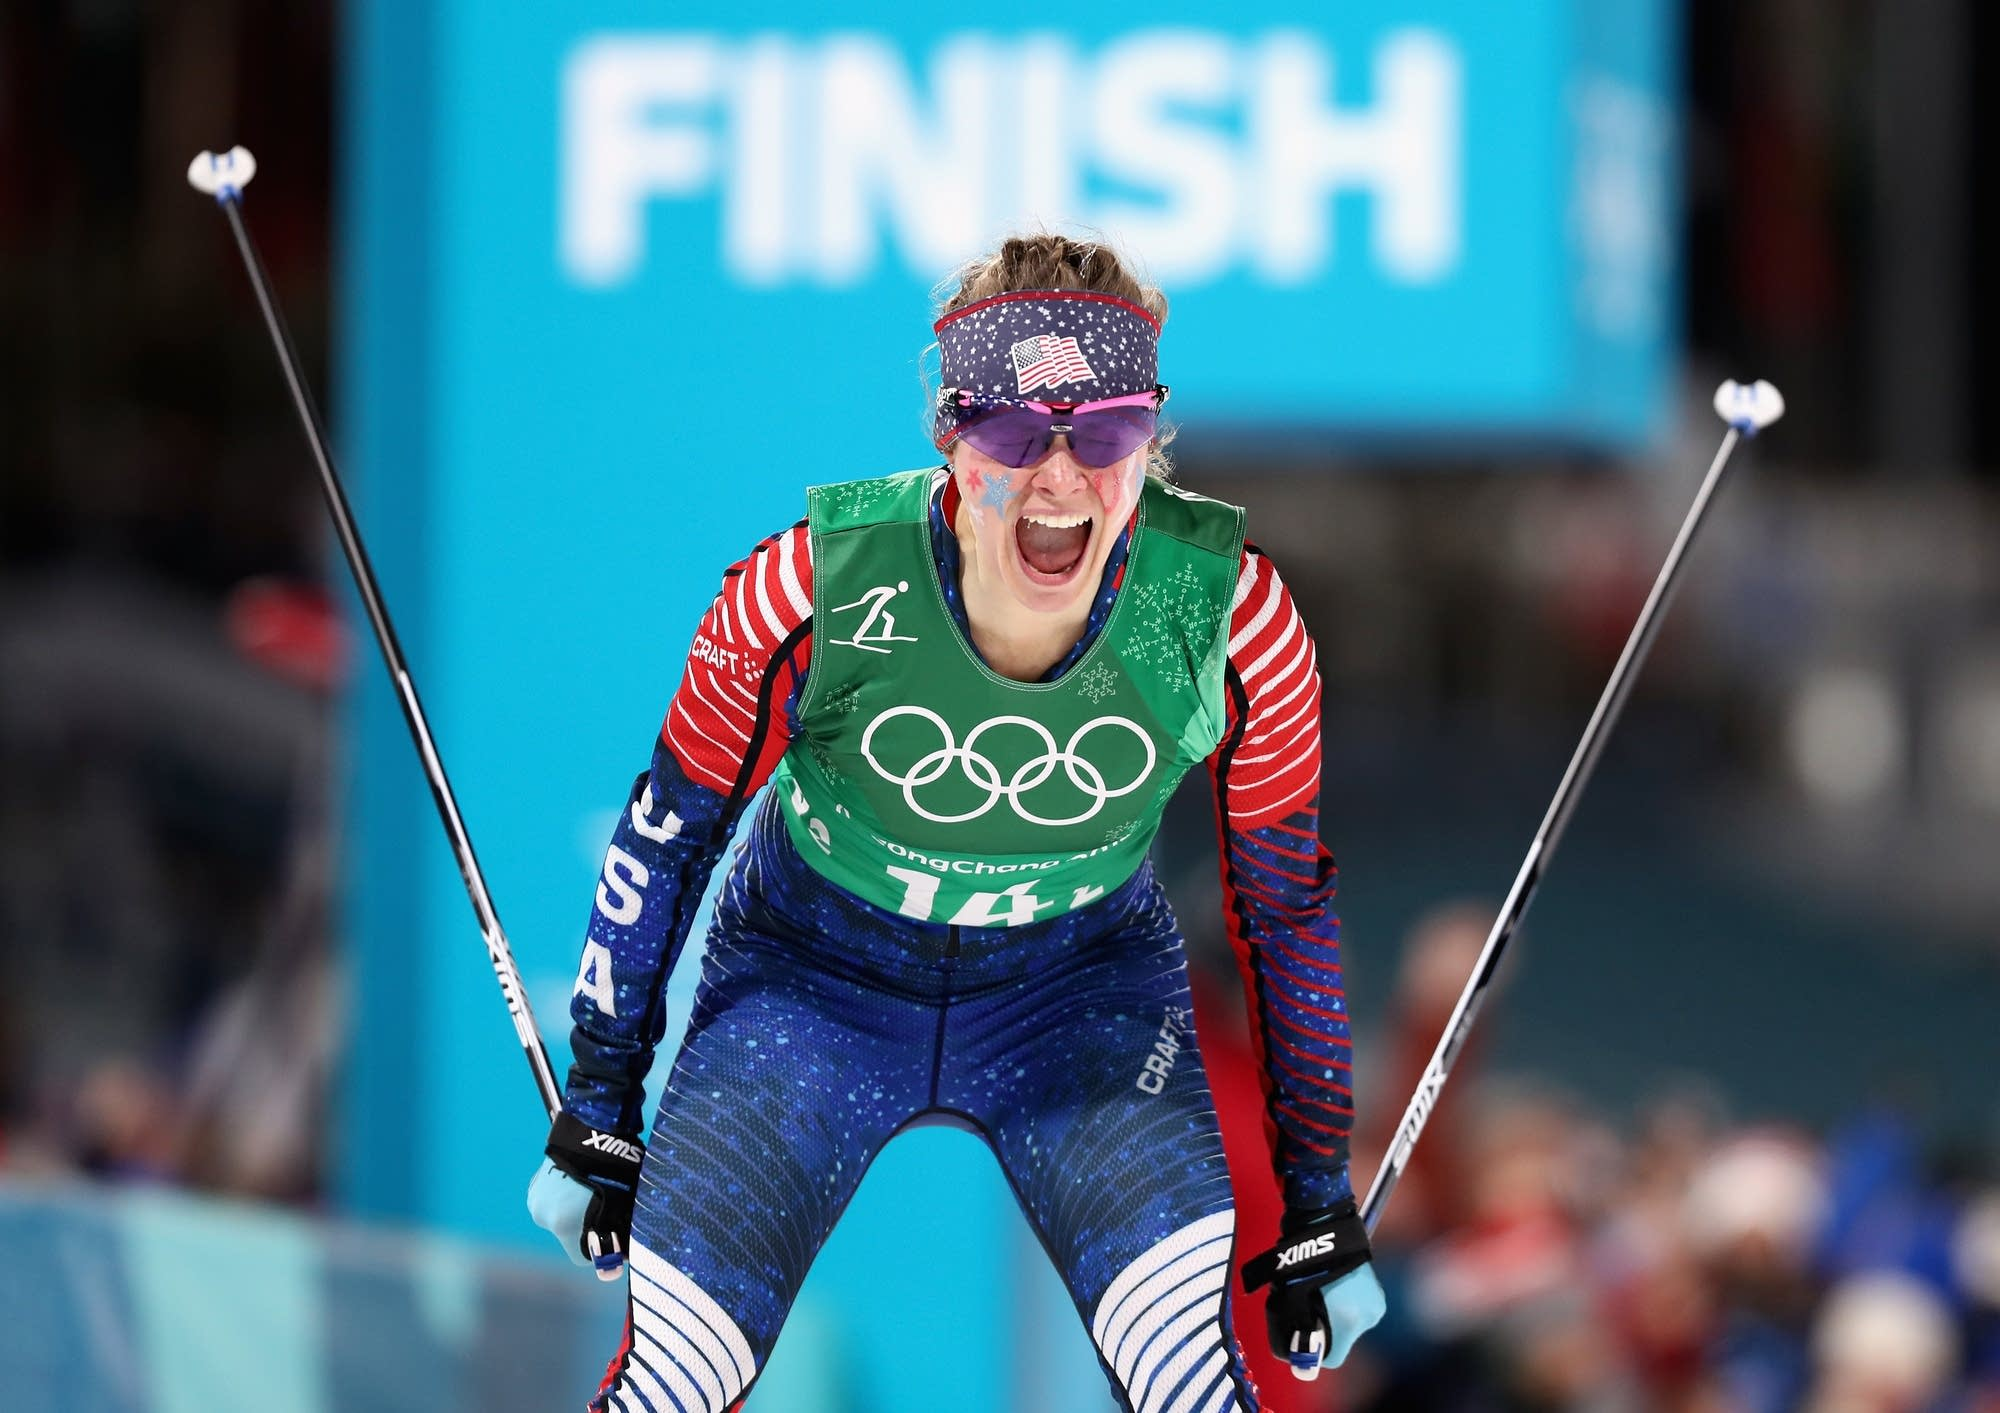 Jessie Diggins of the United States celebrates.